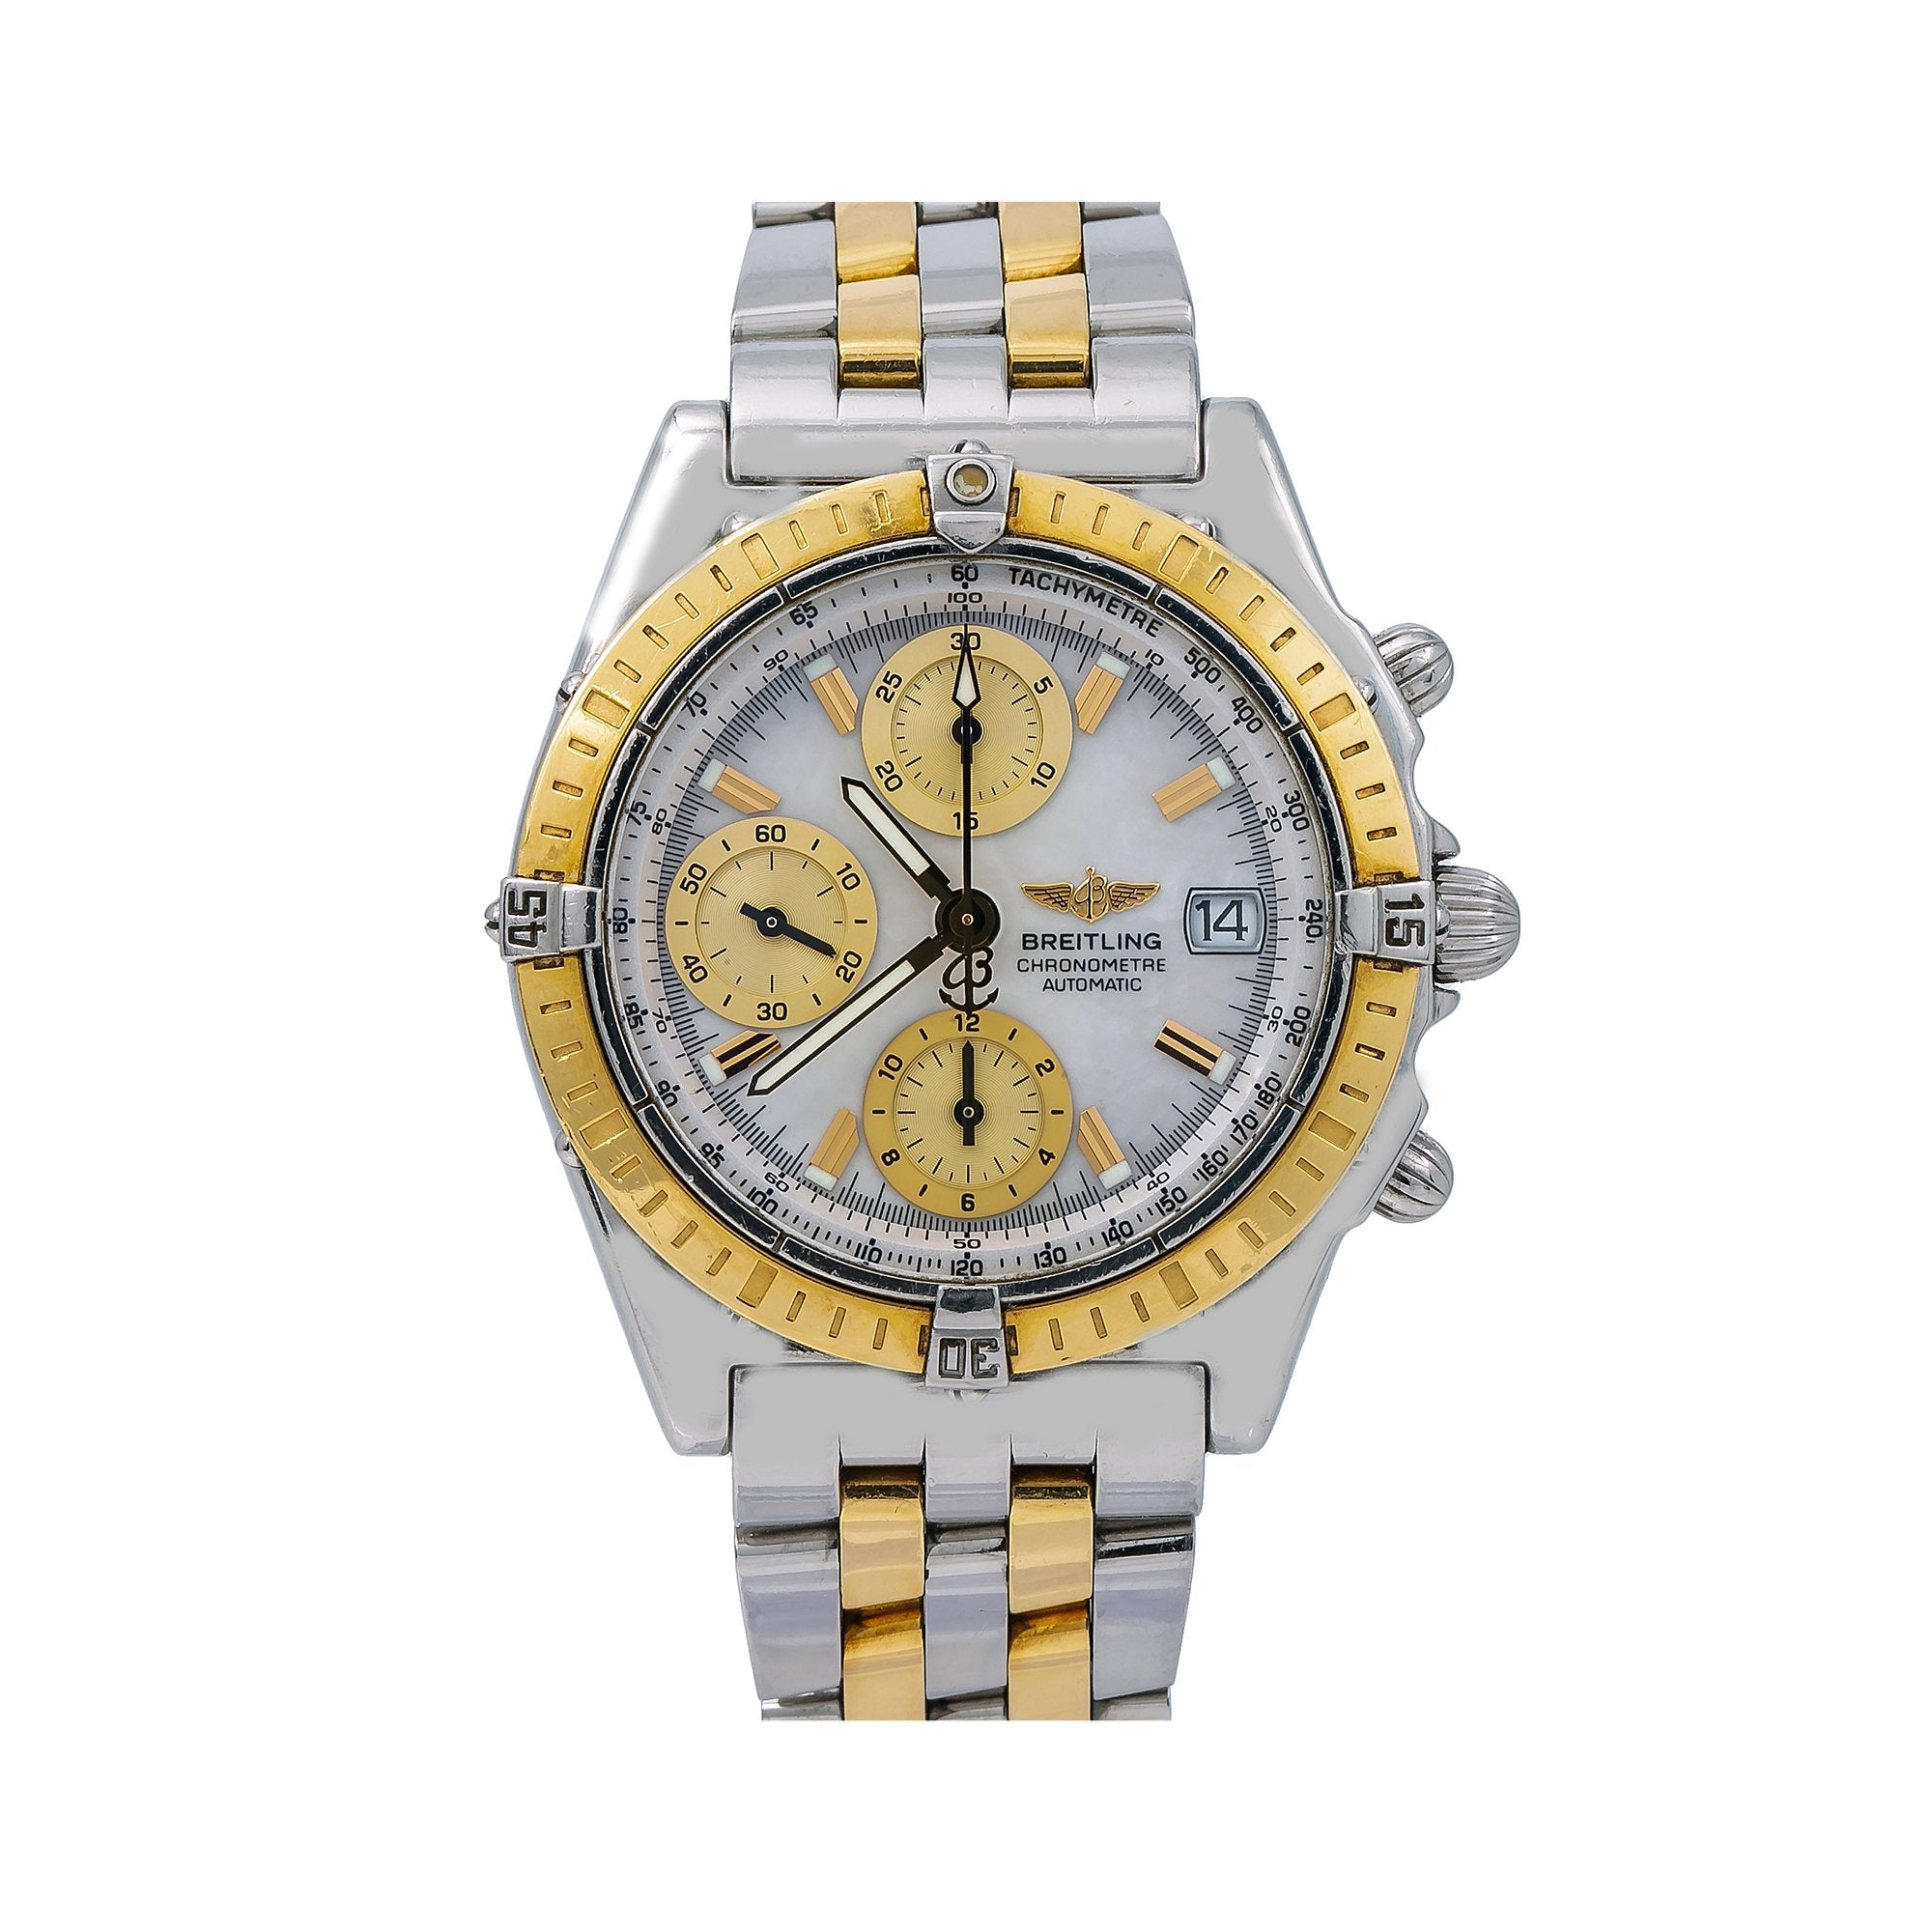 Breitling Chronomat D13352 40MM Mother of Pearl Dial With Two Tone Bracelet